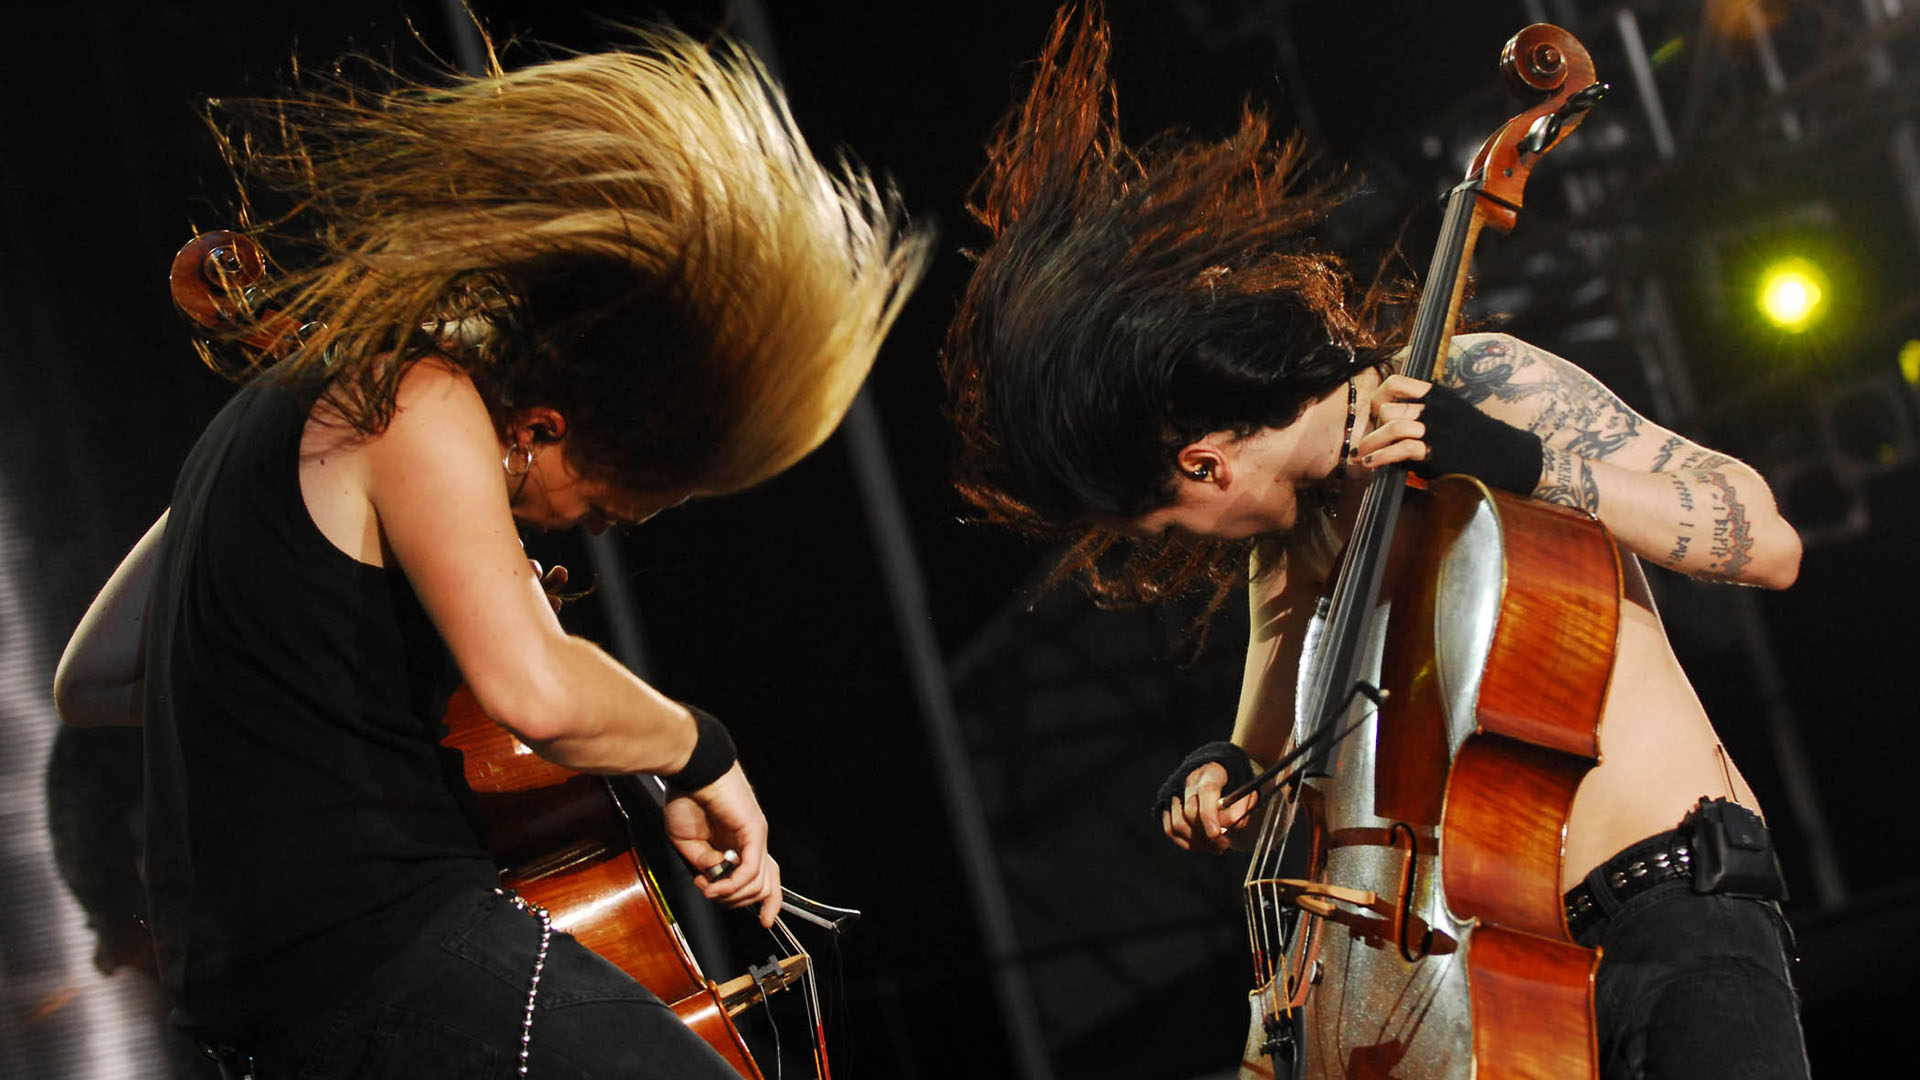 Images of Apocalyptica | 1920x1080